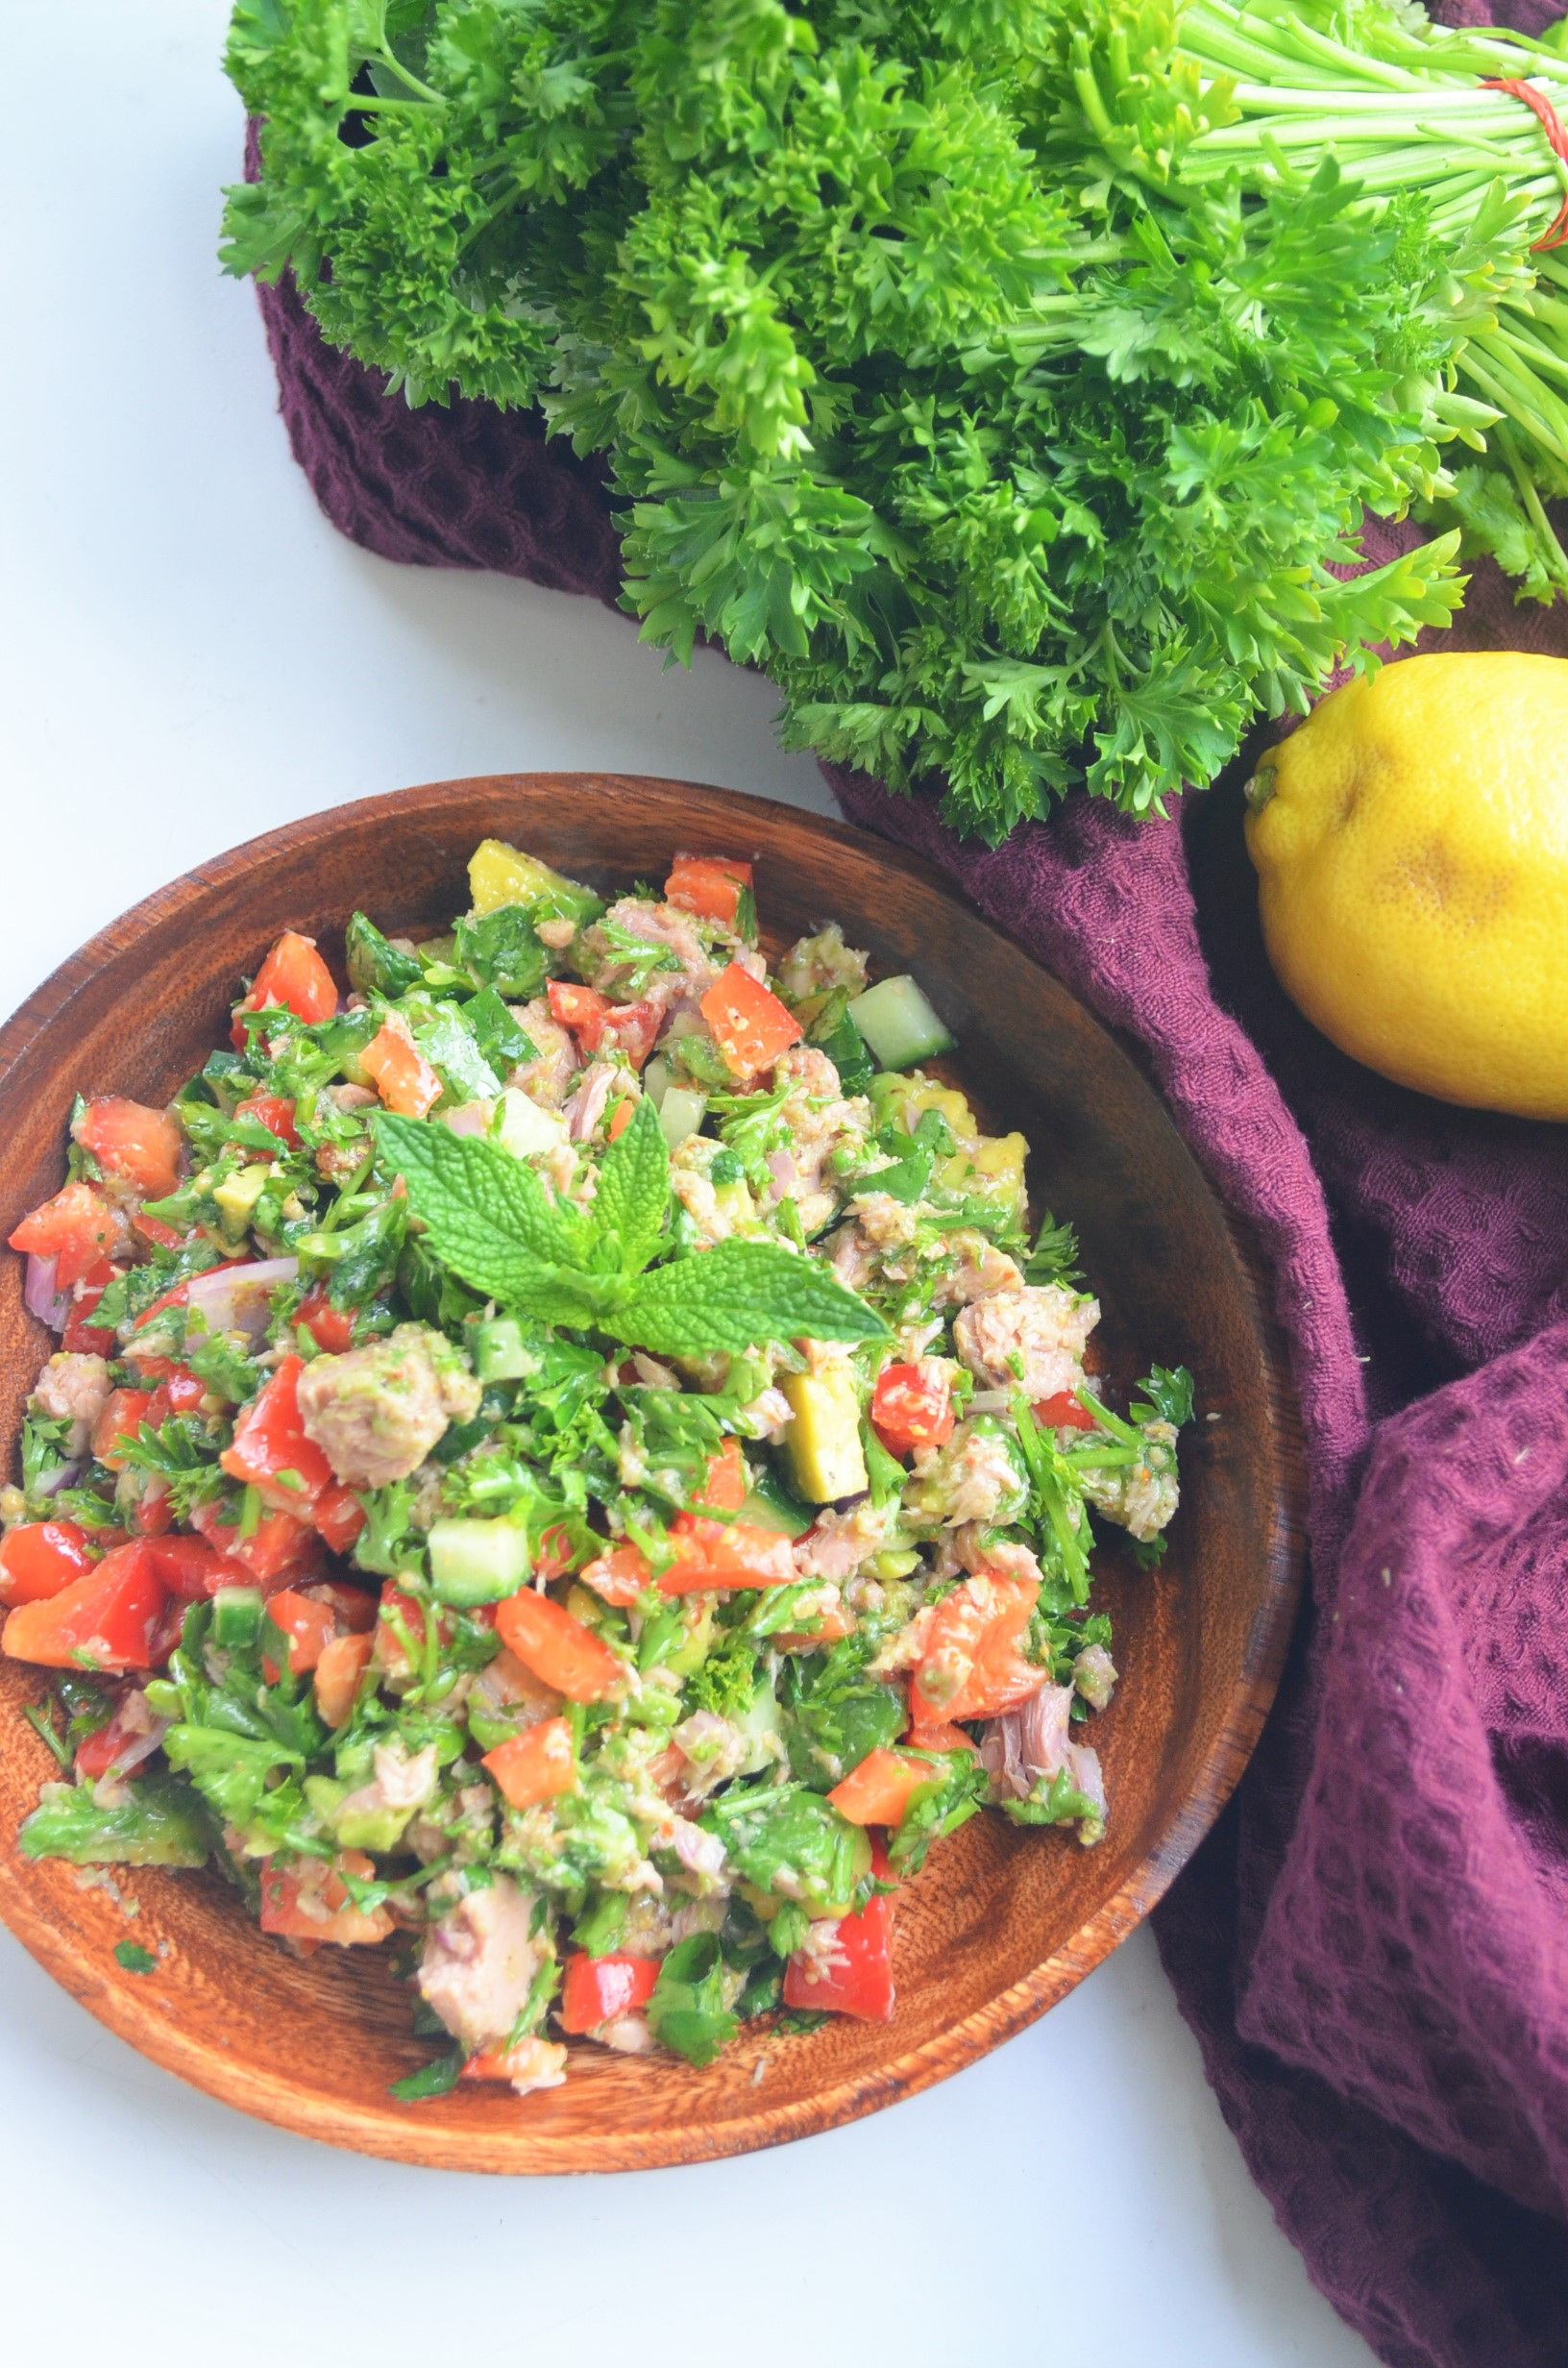 Avocado Tuna Salad with Lemon Dressing